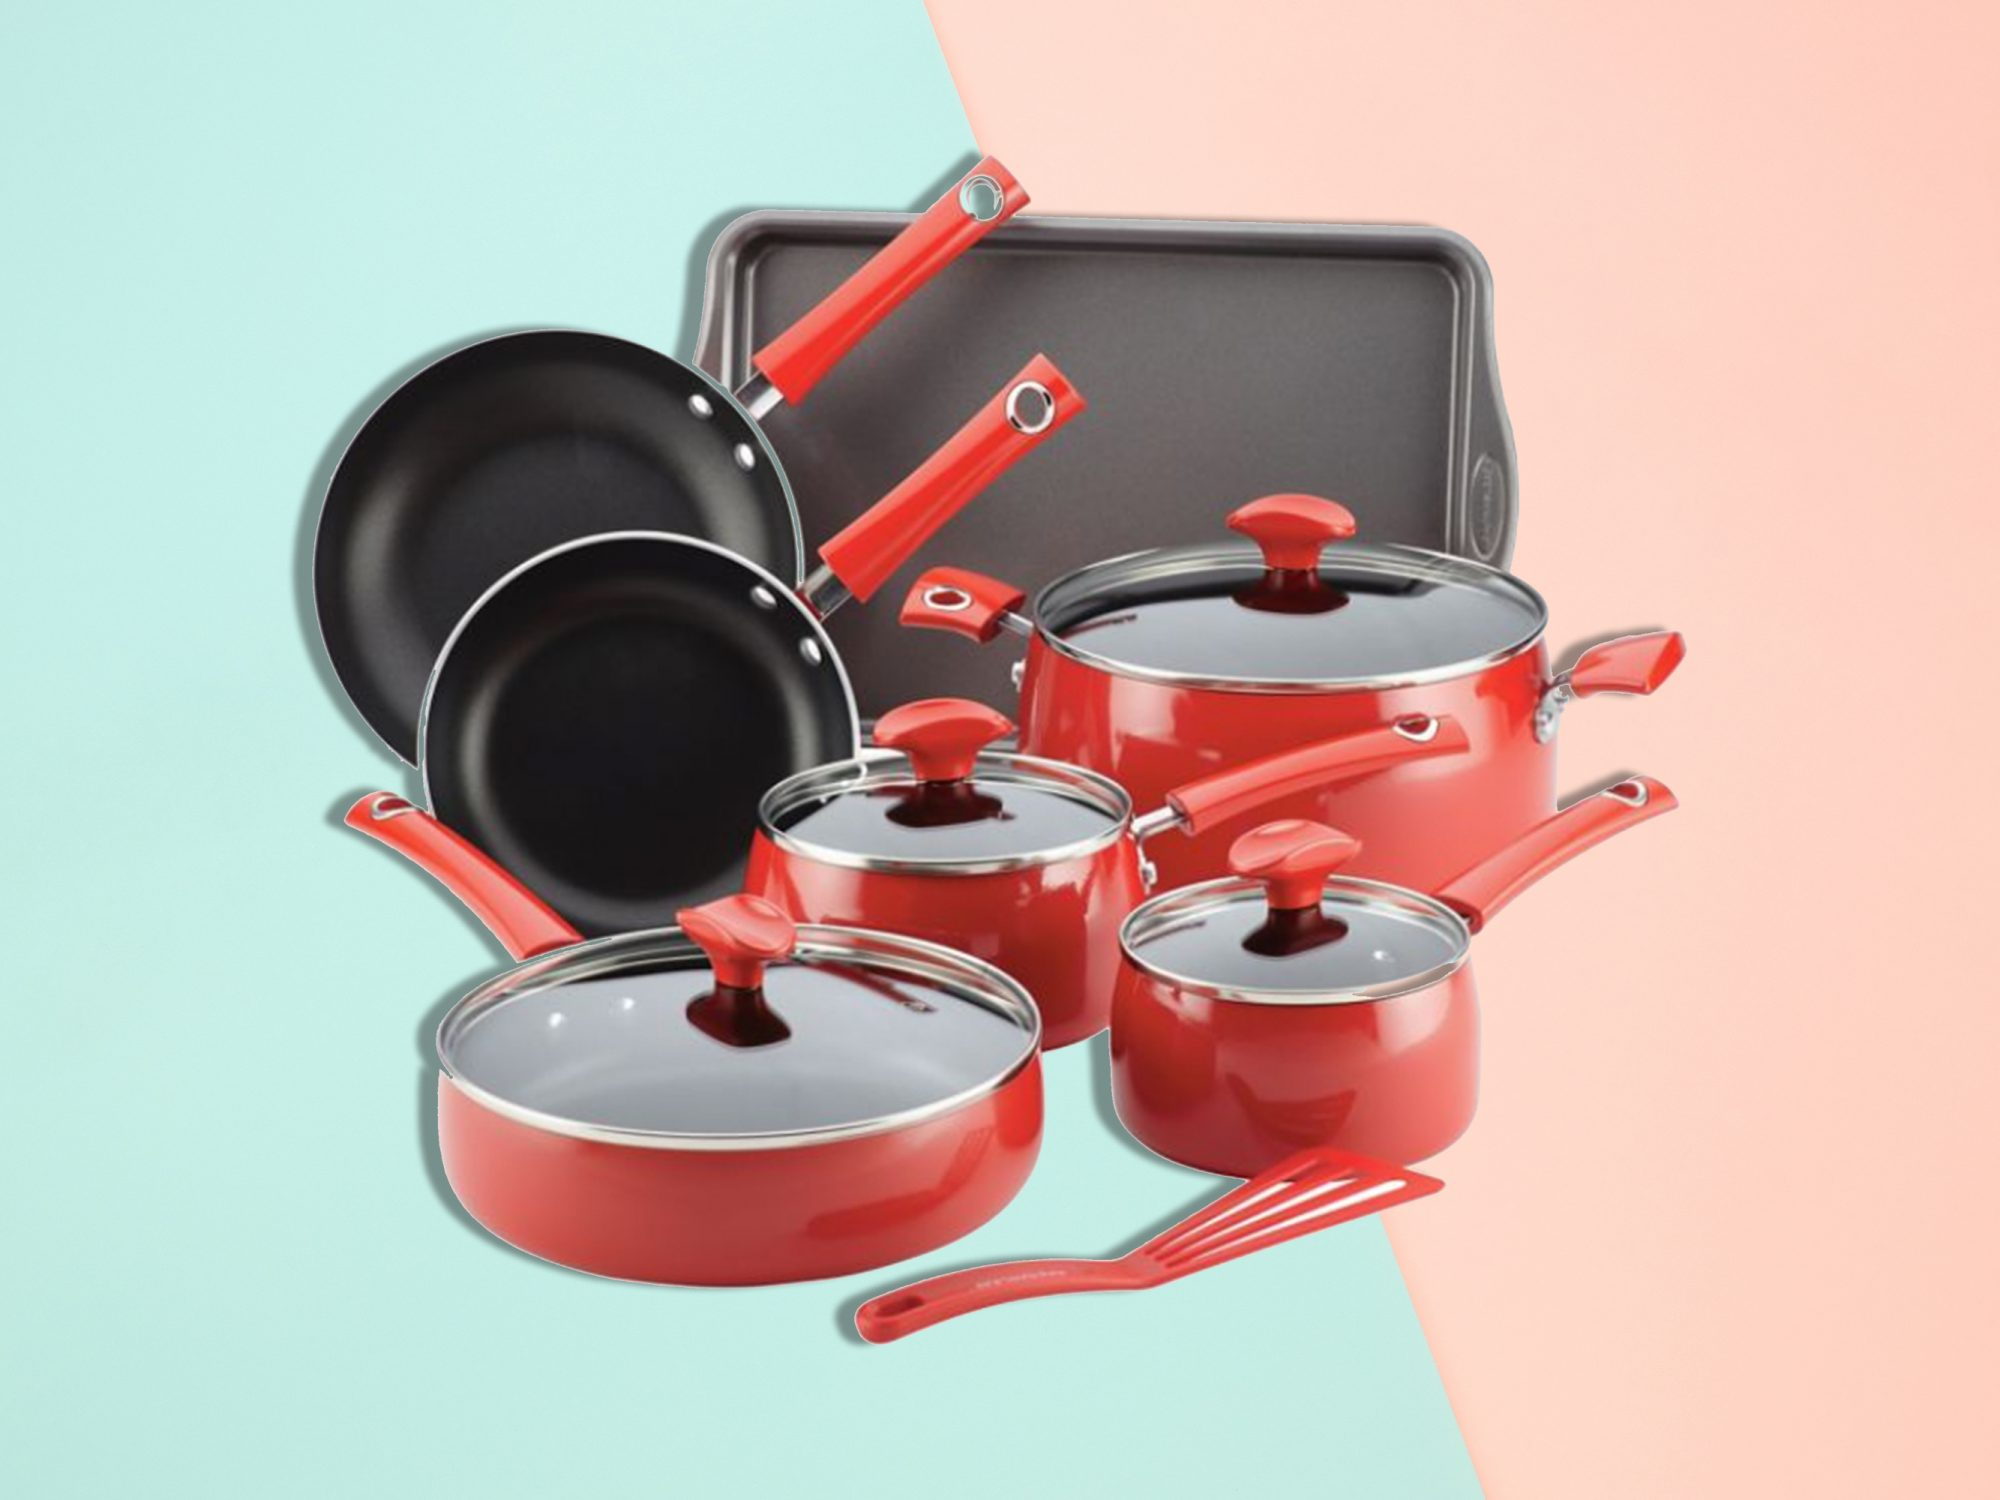 These Are the Best Cookware Sets of 2018, According to Experts